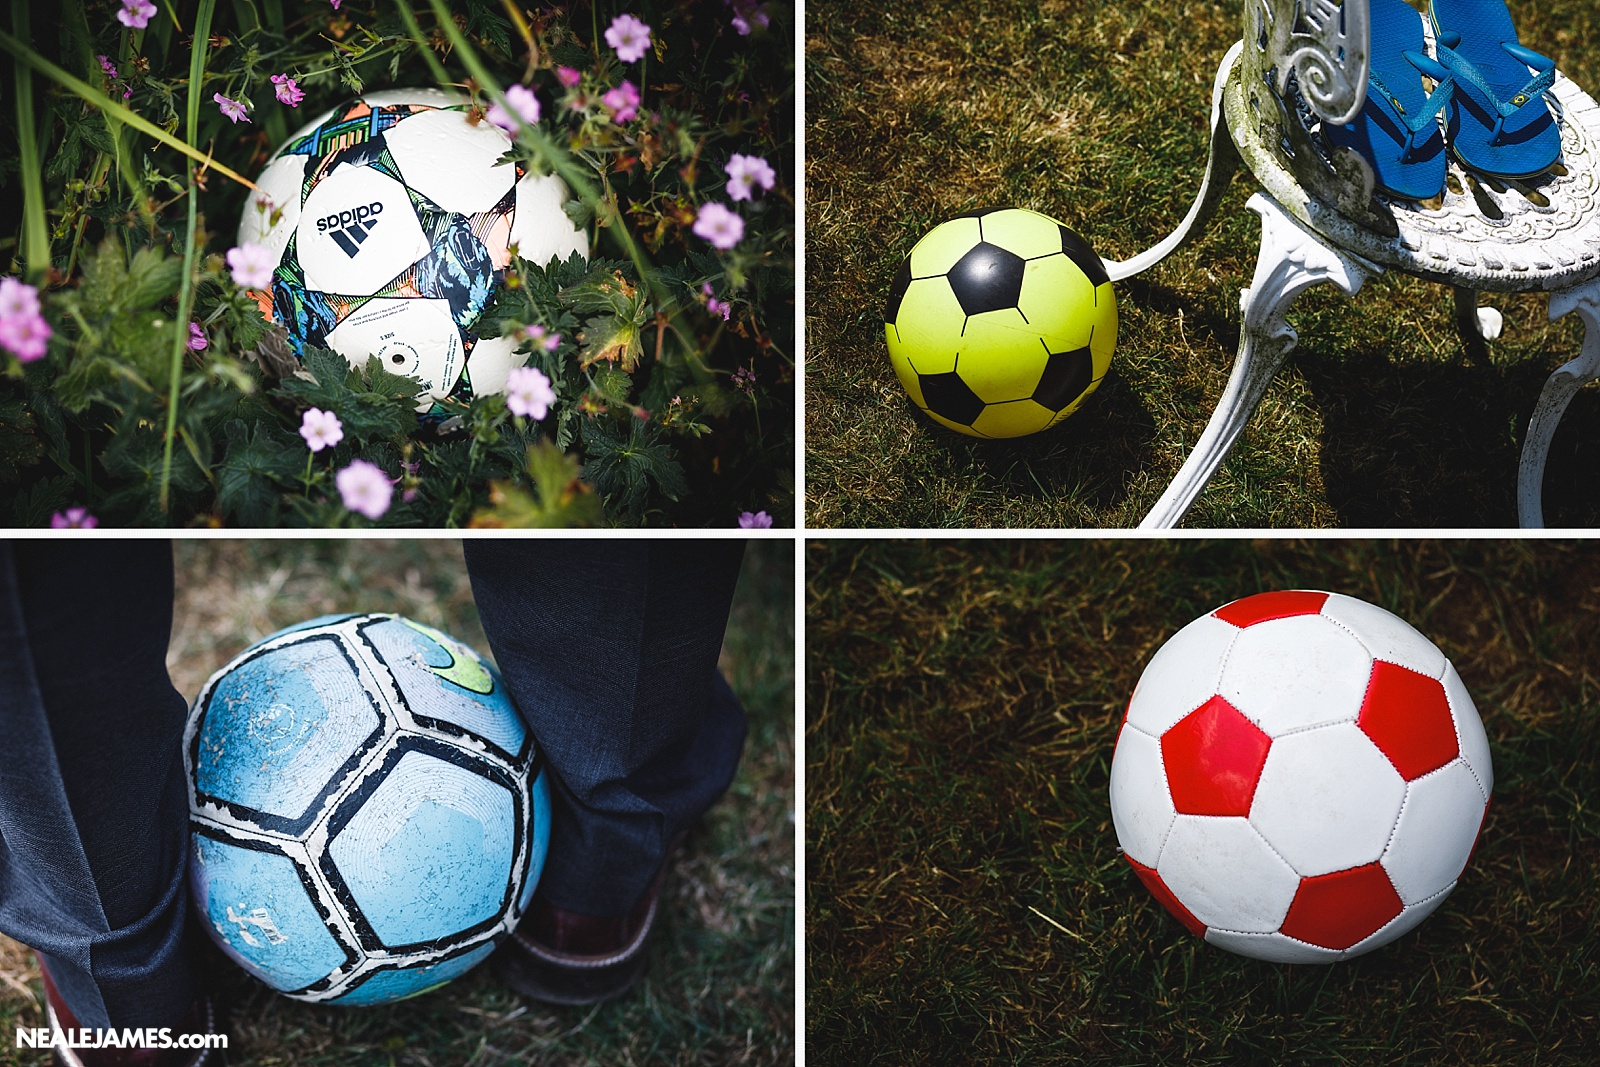 Colour photo of footballs